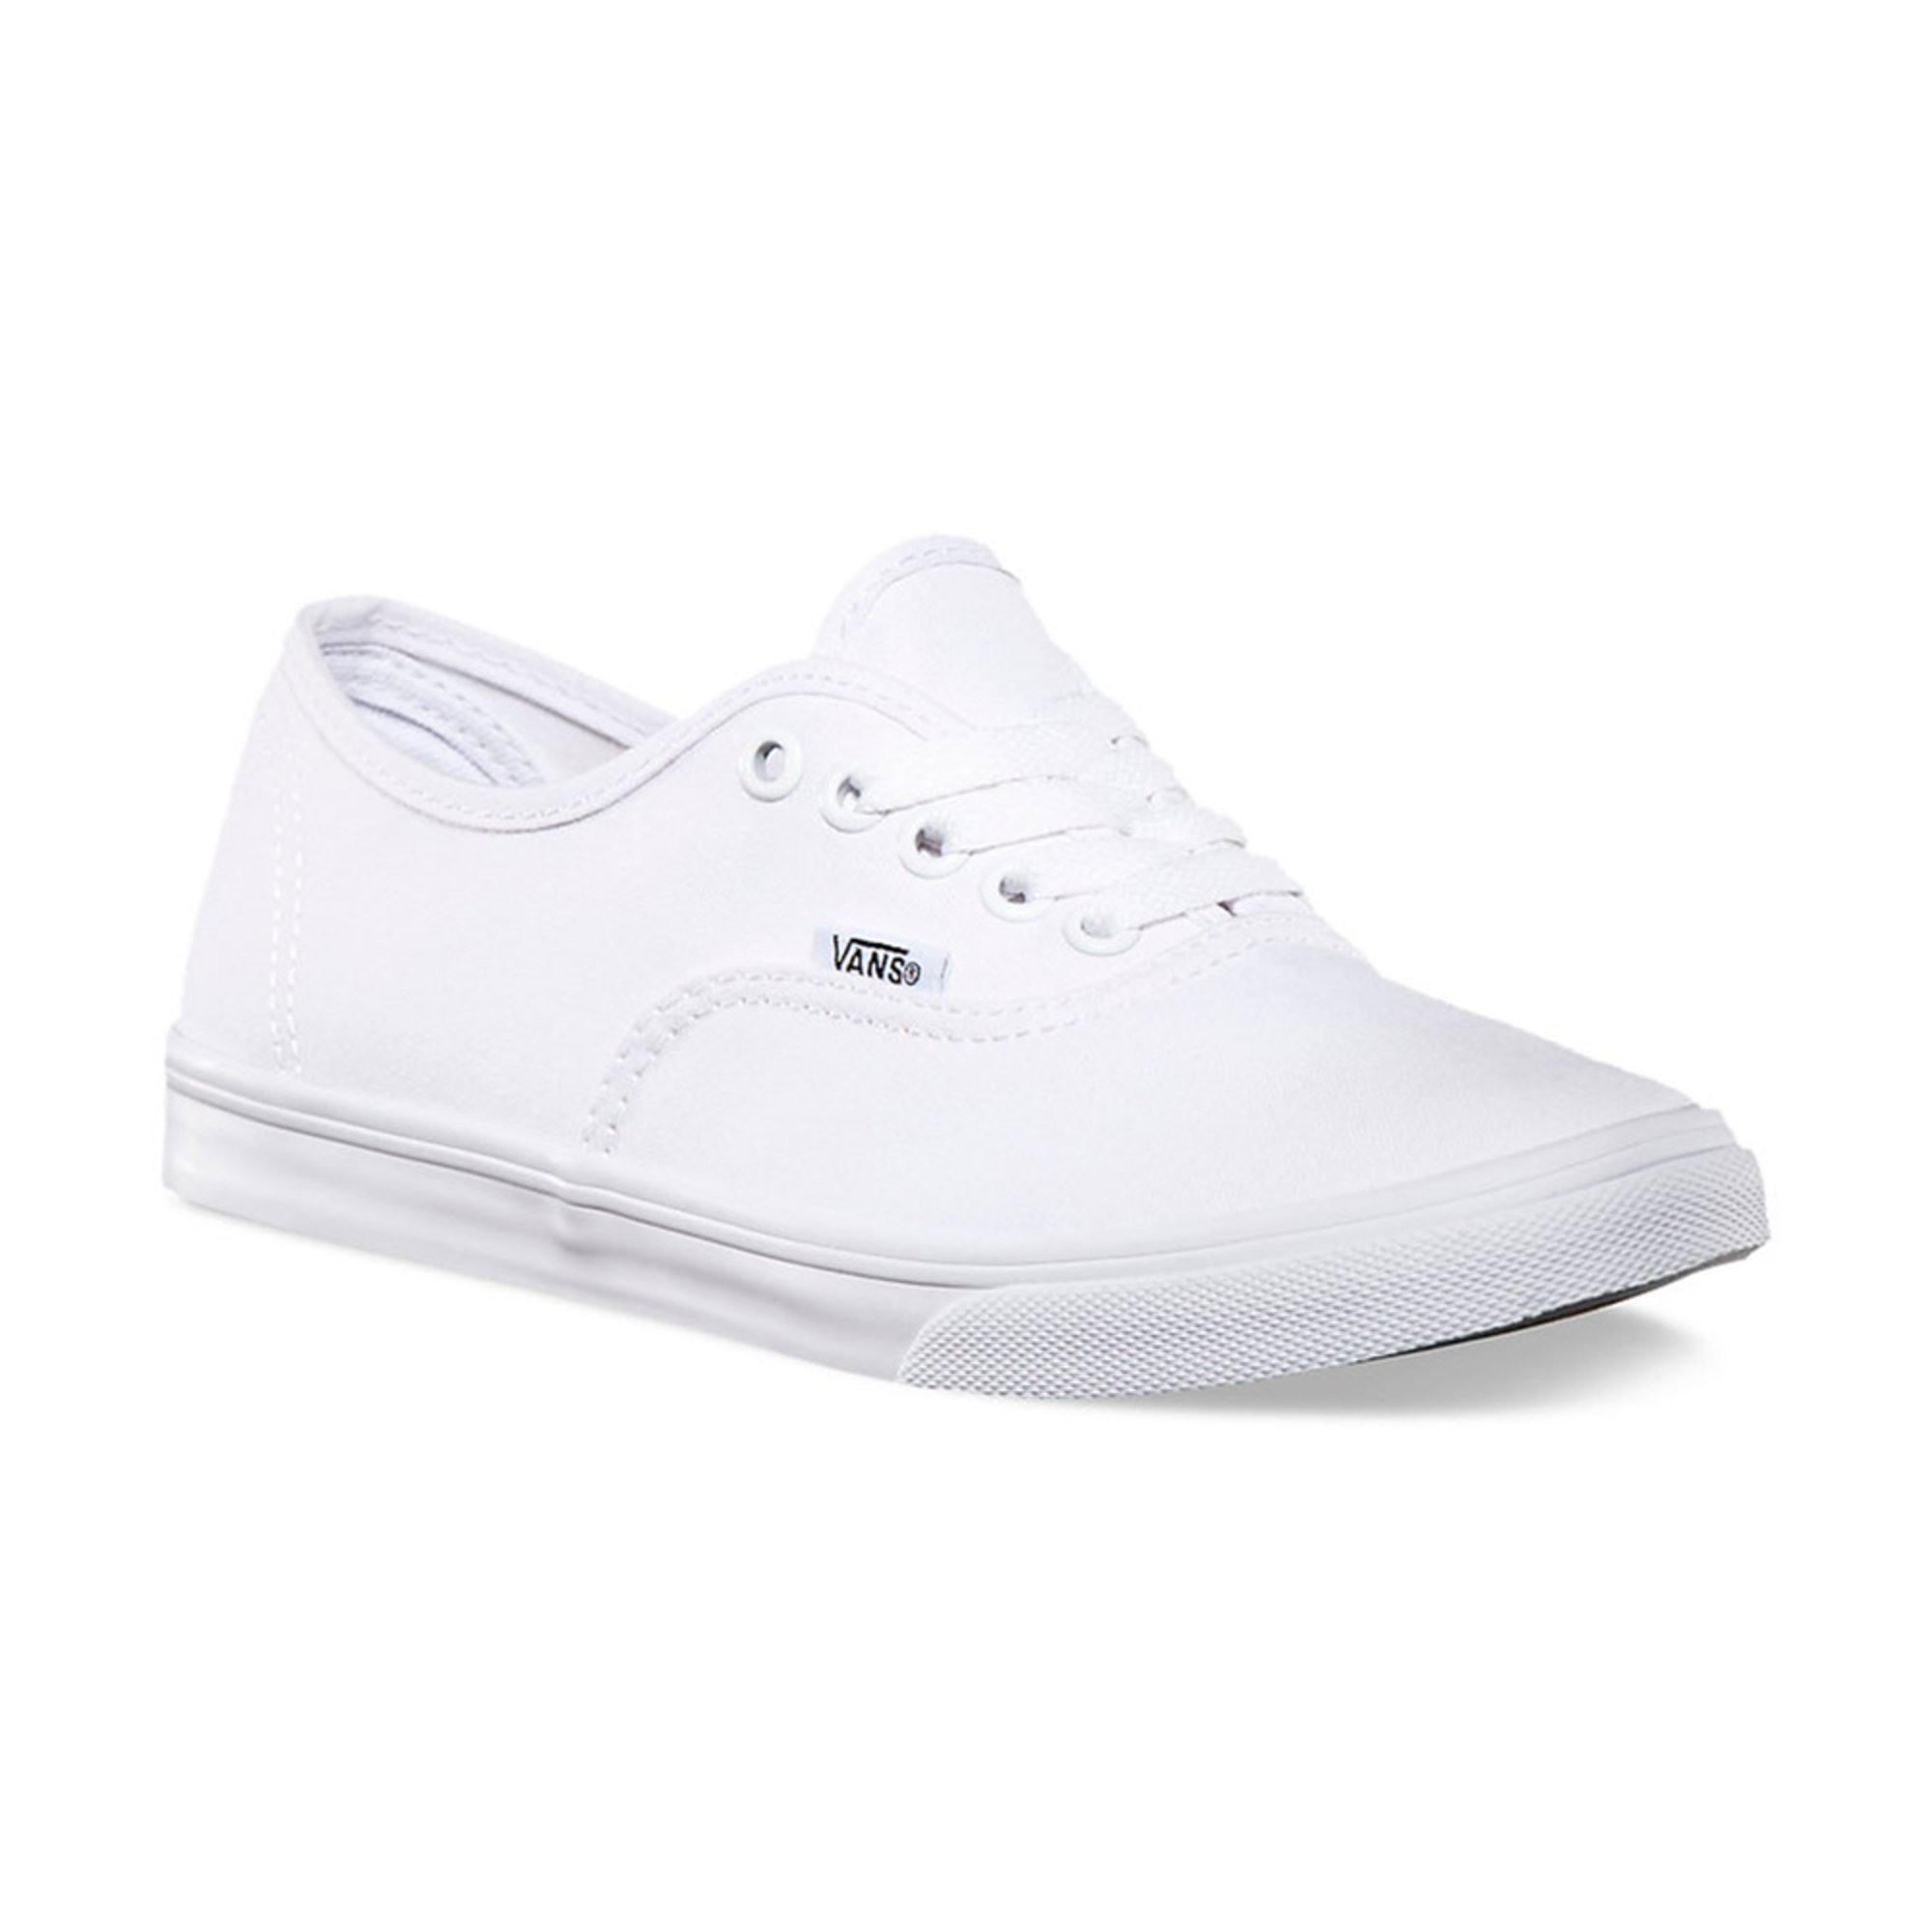 f80383e3ae Vans Unisex Authentic Lo Pro Skate Shoe. MSRP.  45.00. Product Rating 0  Based on 0 reviews. 100